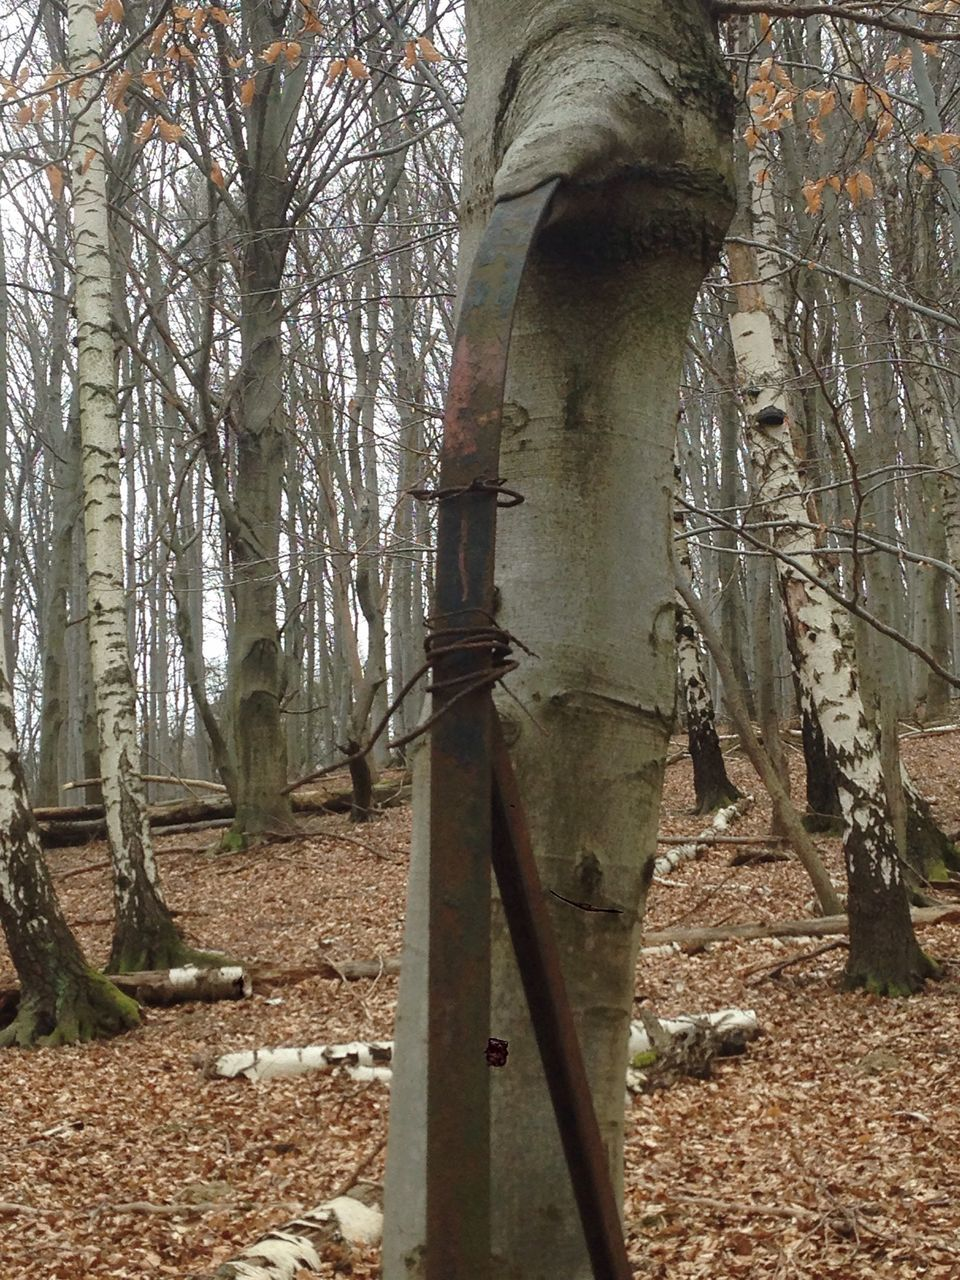 tree, tree trunk, forest, tranquility, day, nature, growth, no people, outdoors, scenics, branch